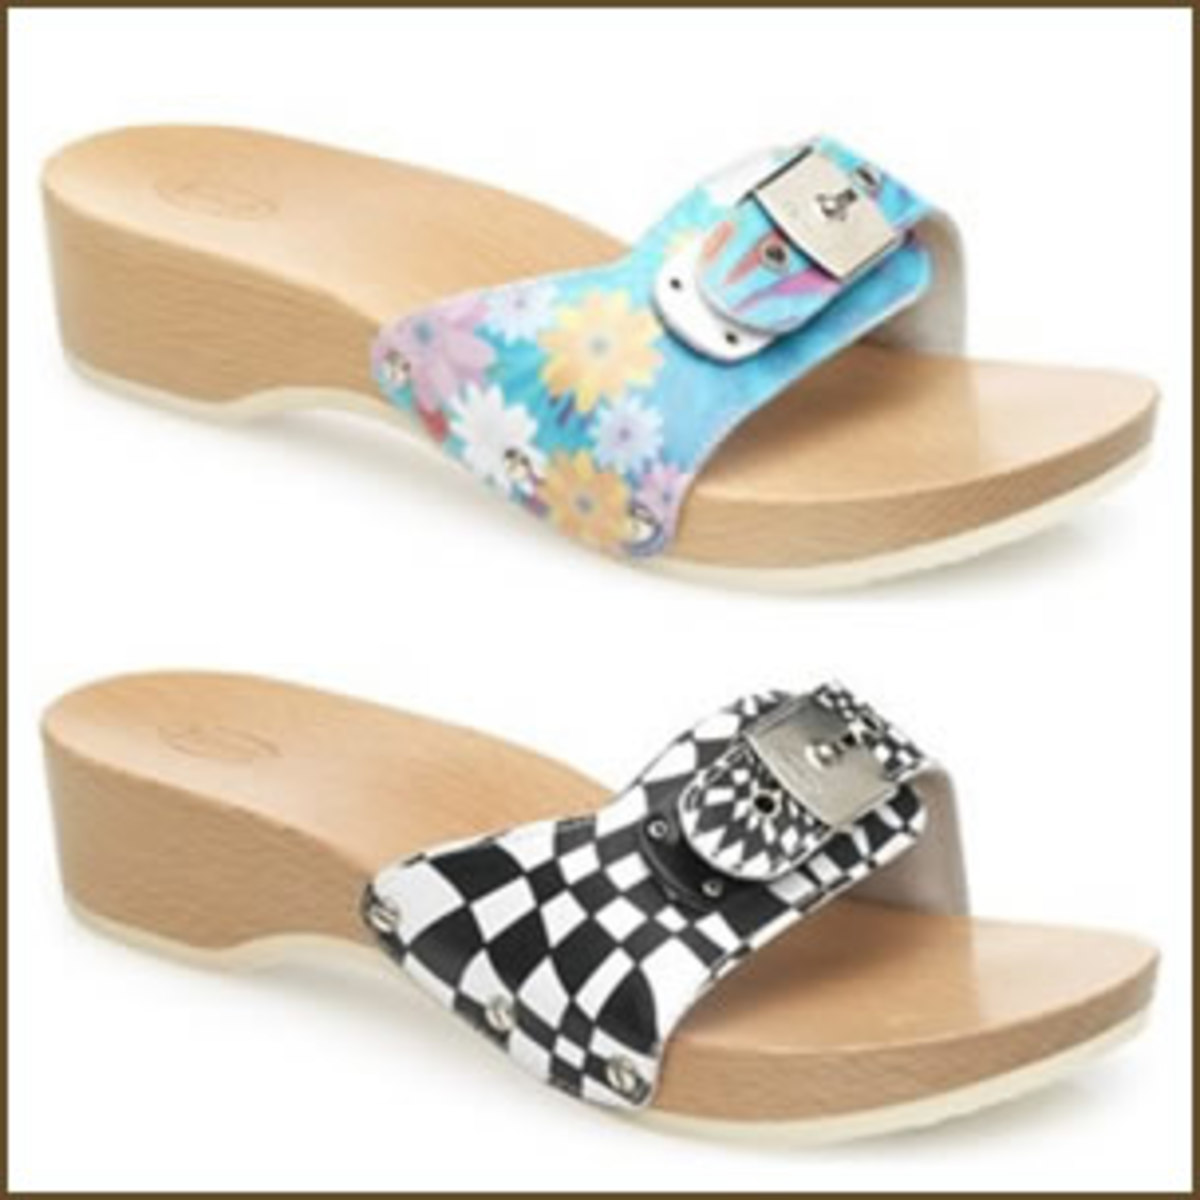 Thee Original toning sandal from Doctor Scholl